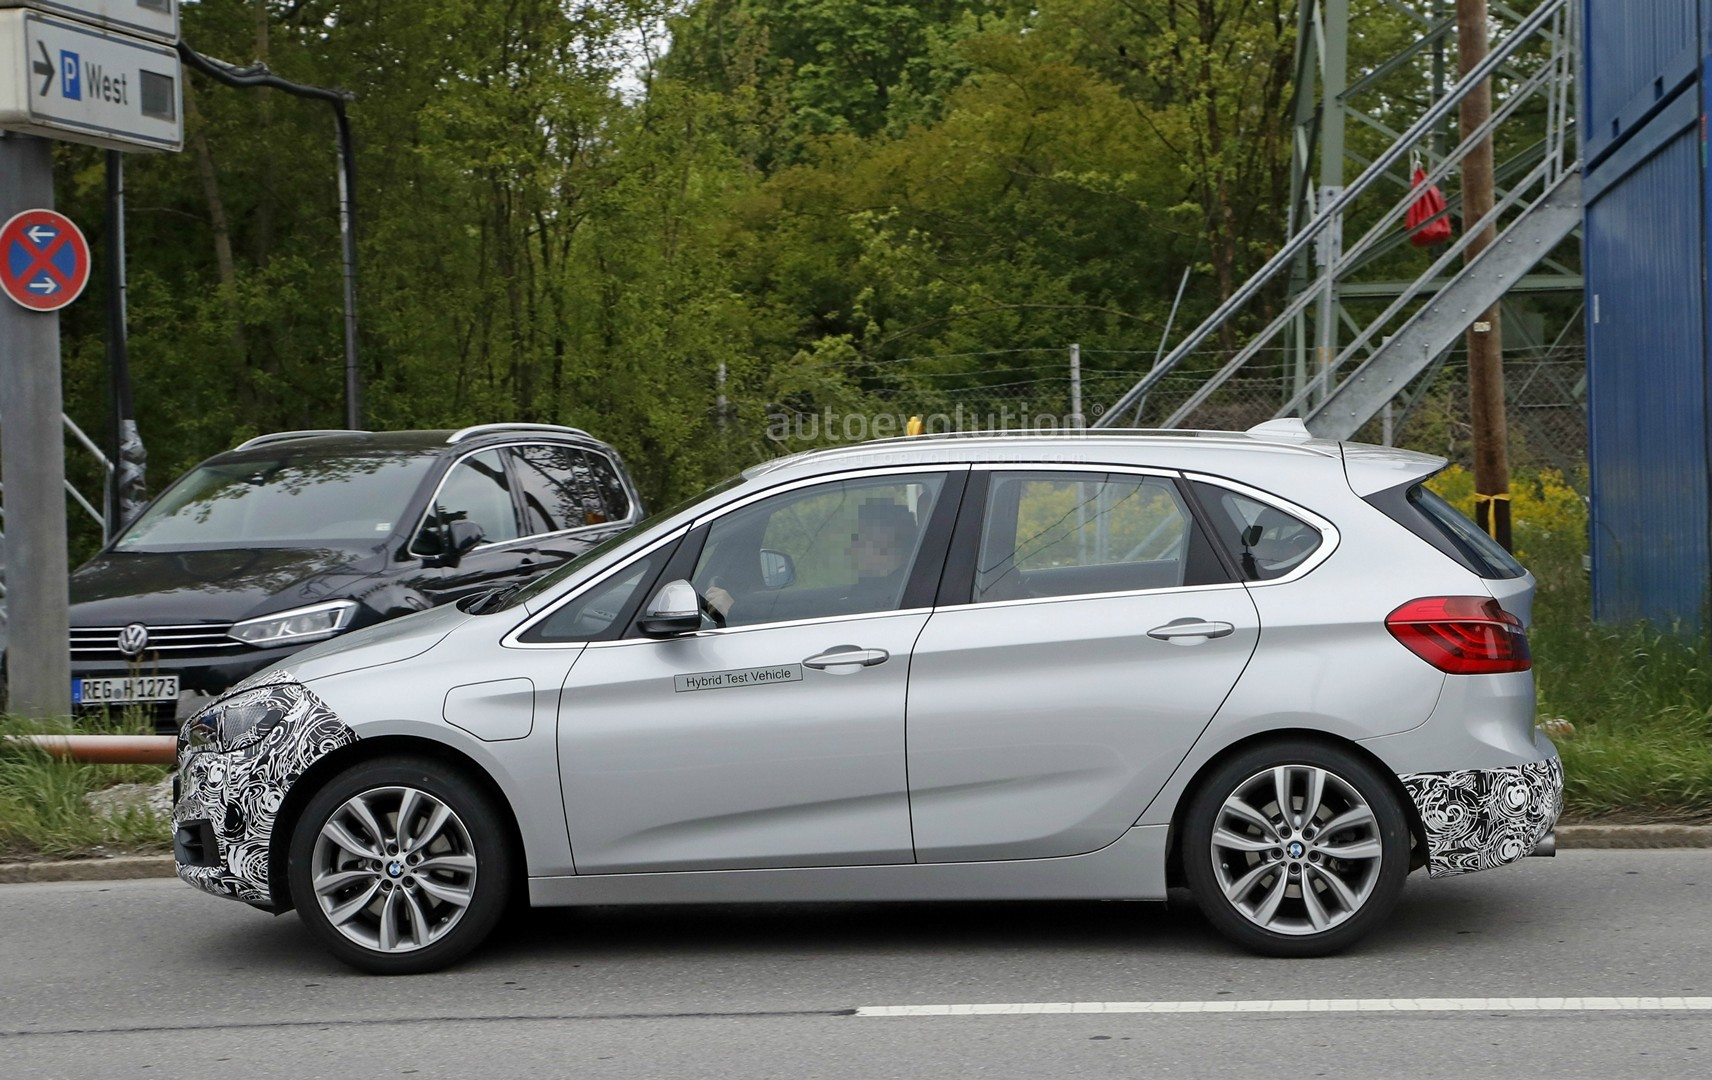 2018 - [BMW] Série 2 Active Tourer restylé  2018-bmw-2-series-active-tourer-spied-with-cool-new-headlights_11